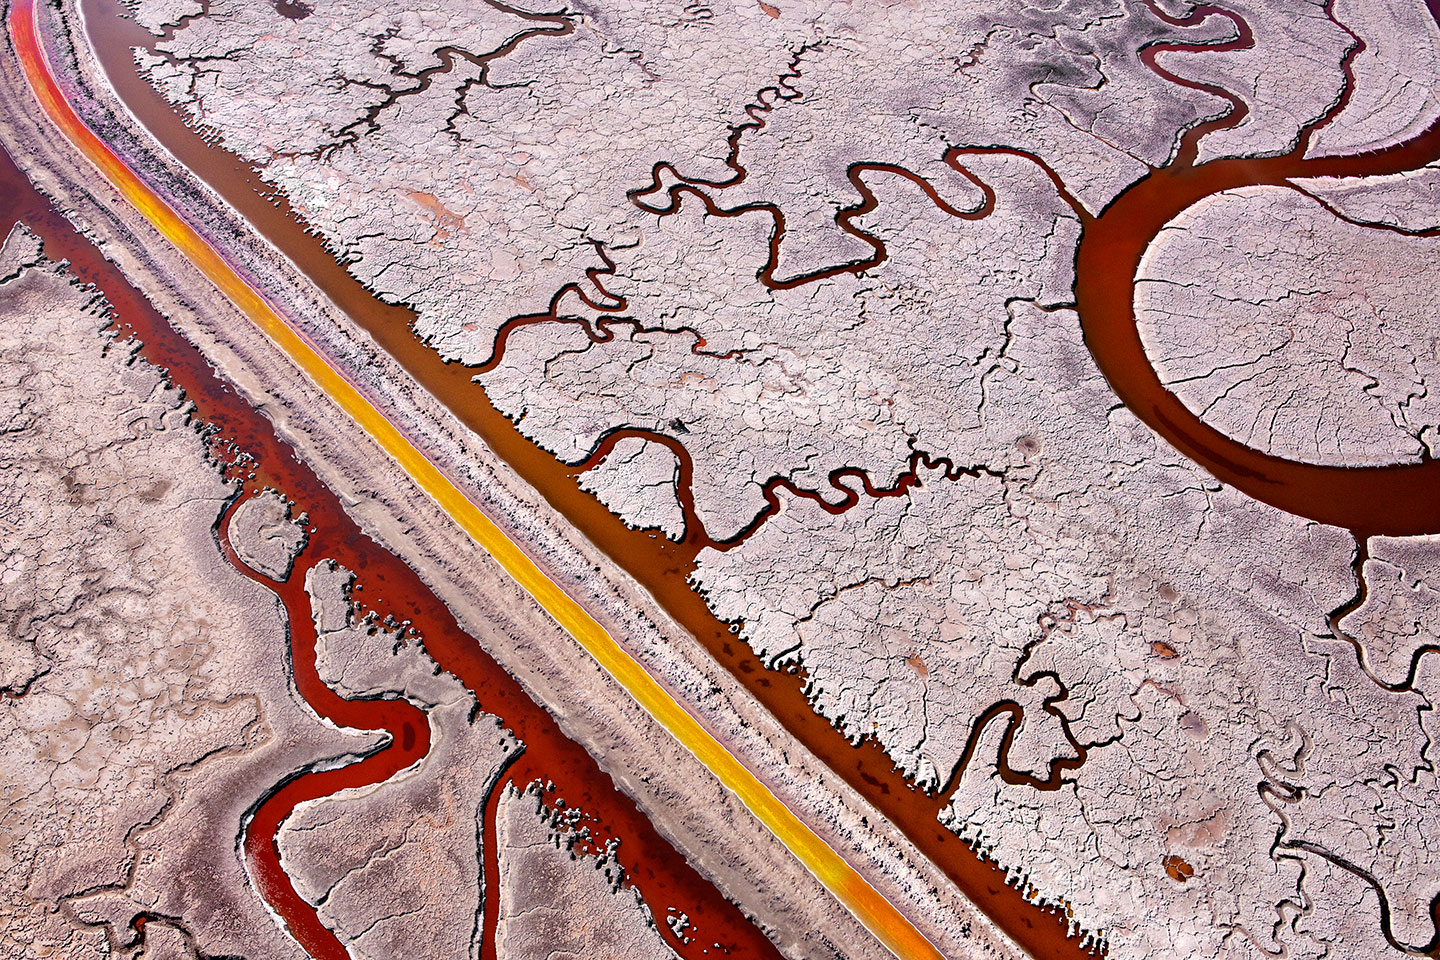 San Francisco Salt Ponds: The Land in Transition